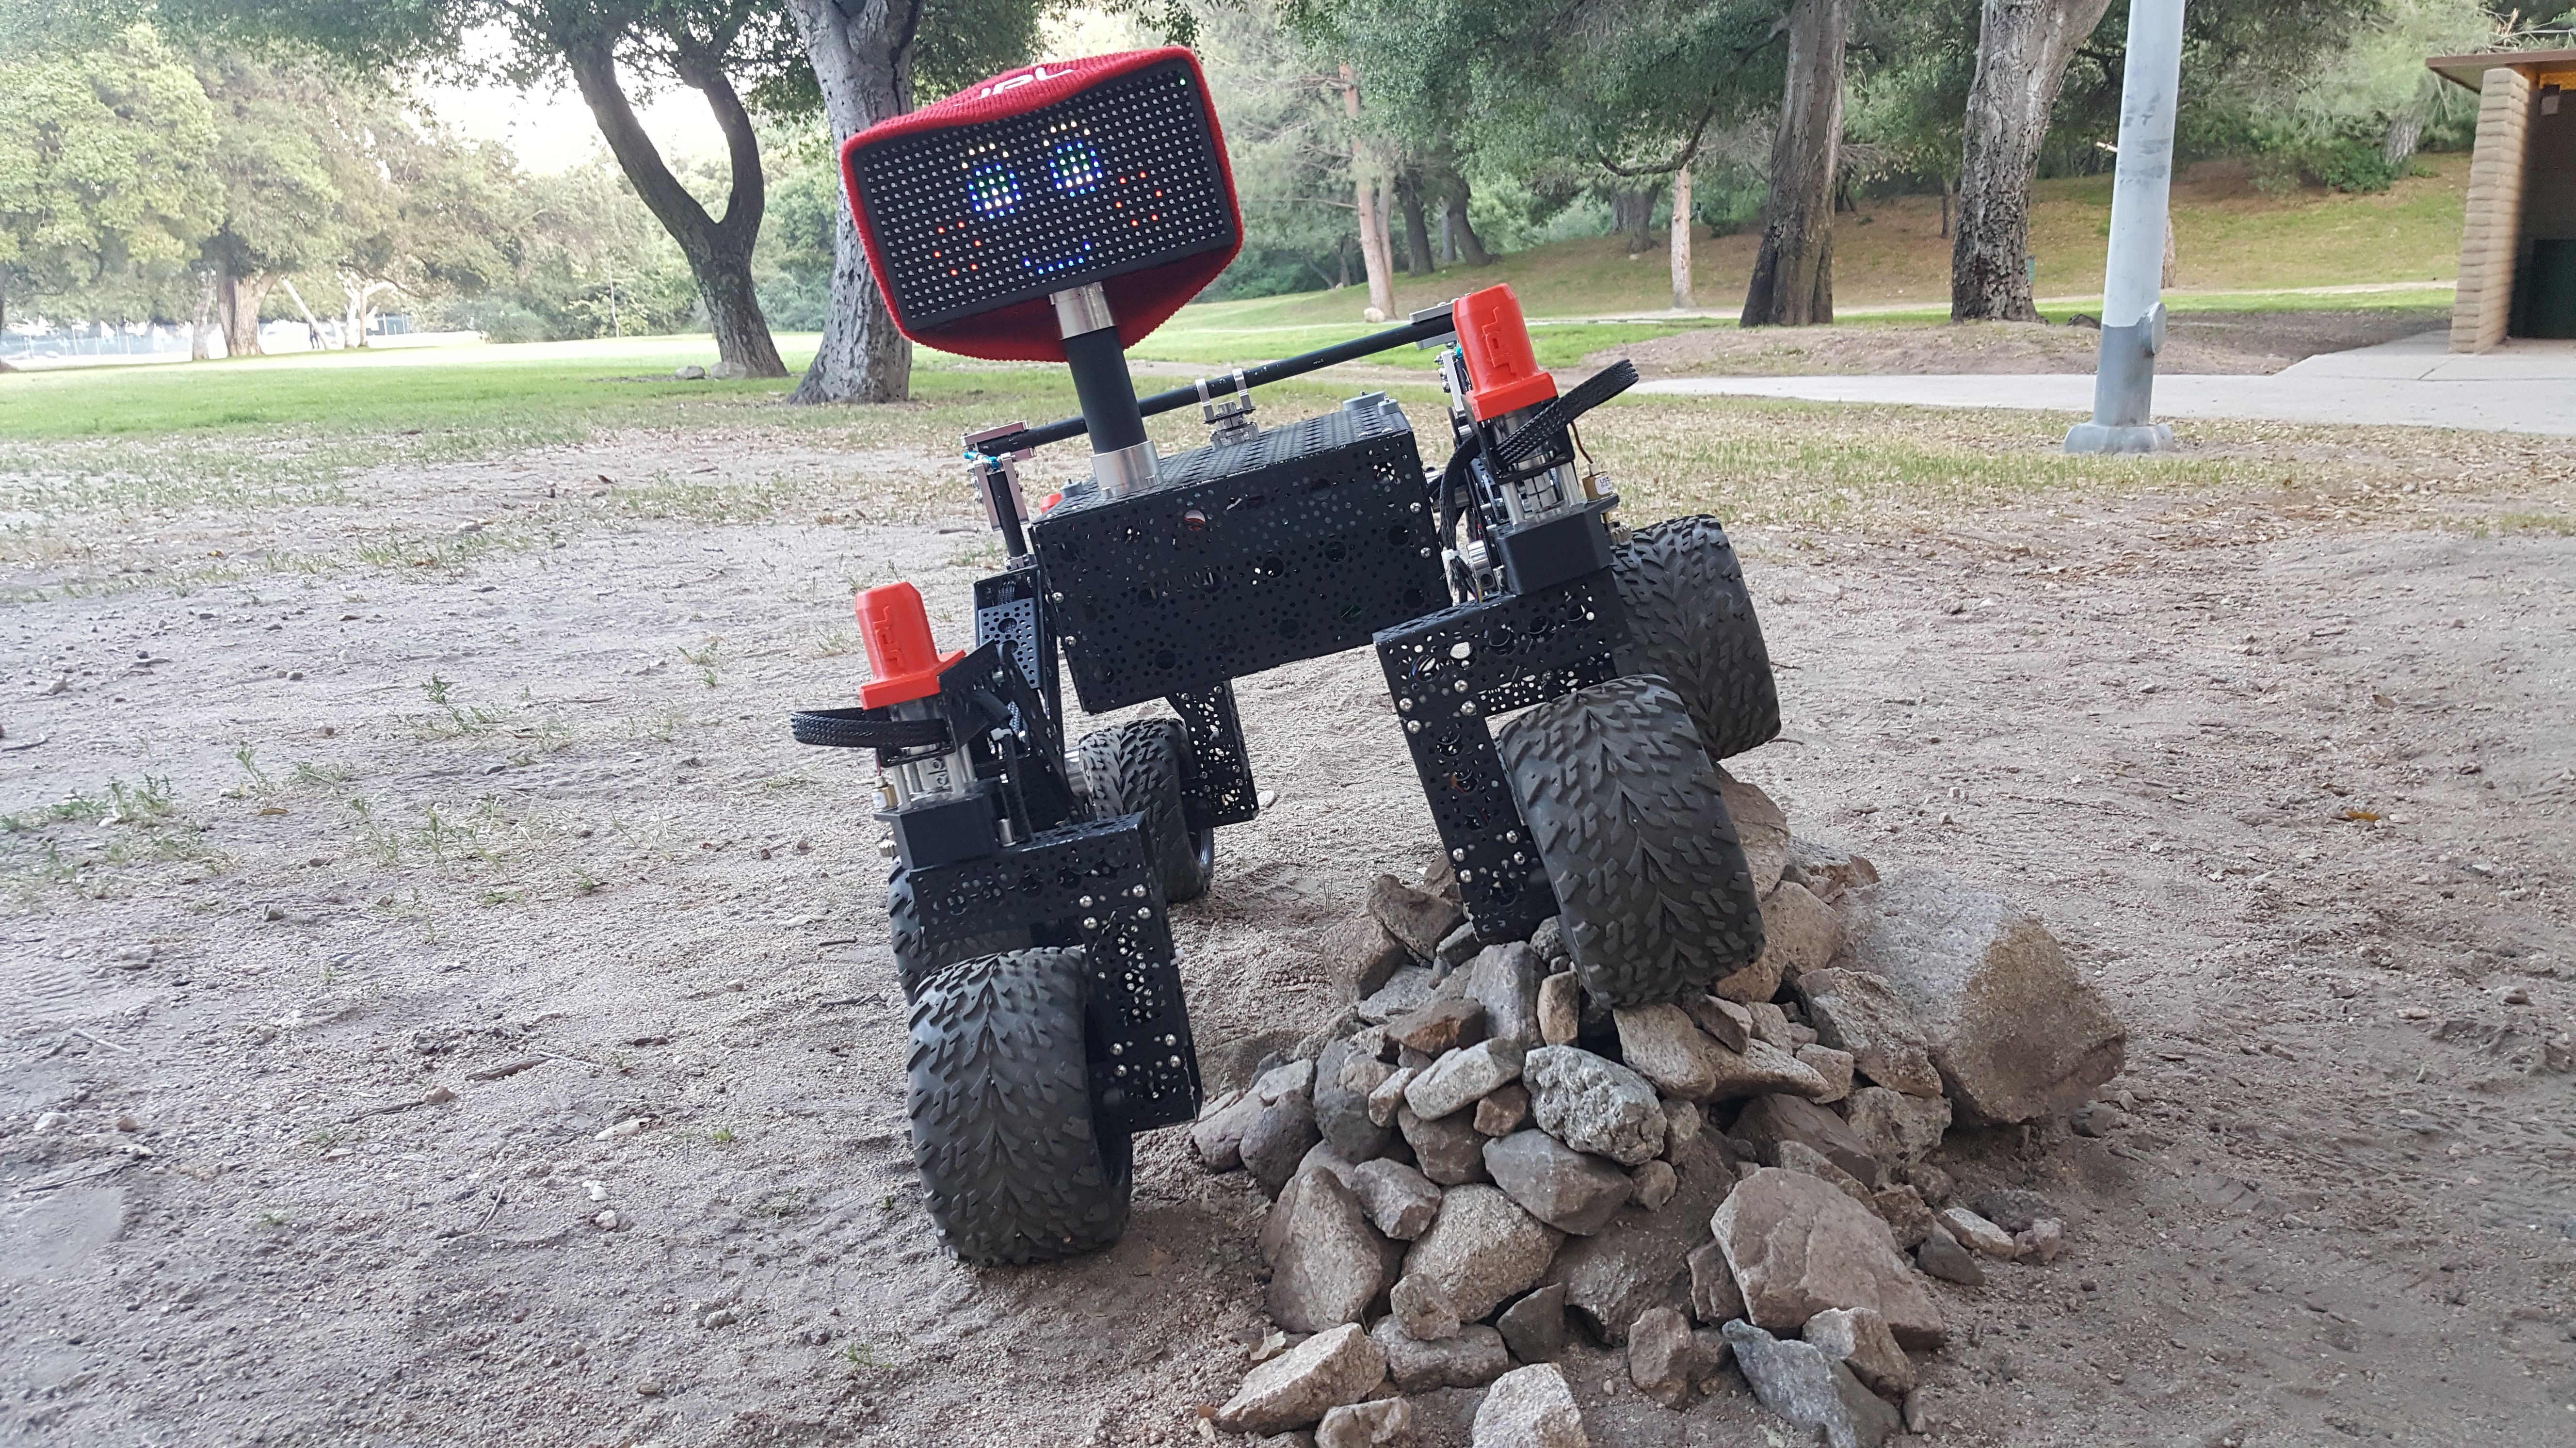 You Can Now Build Your Own Mars Rover for About $2500 - Mental Floss